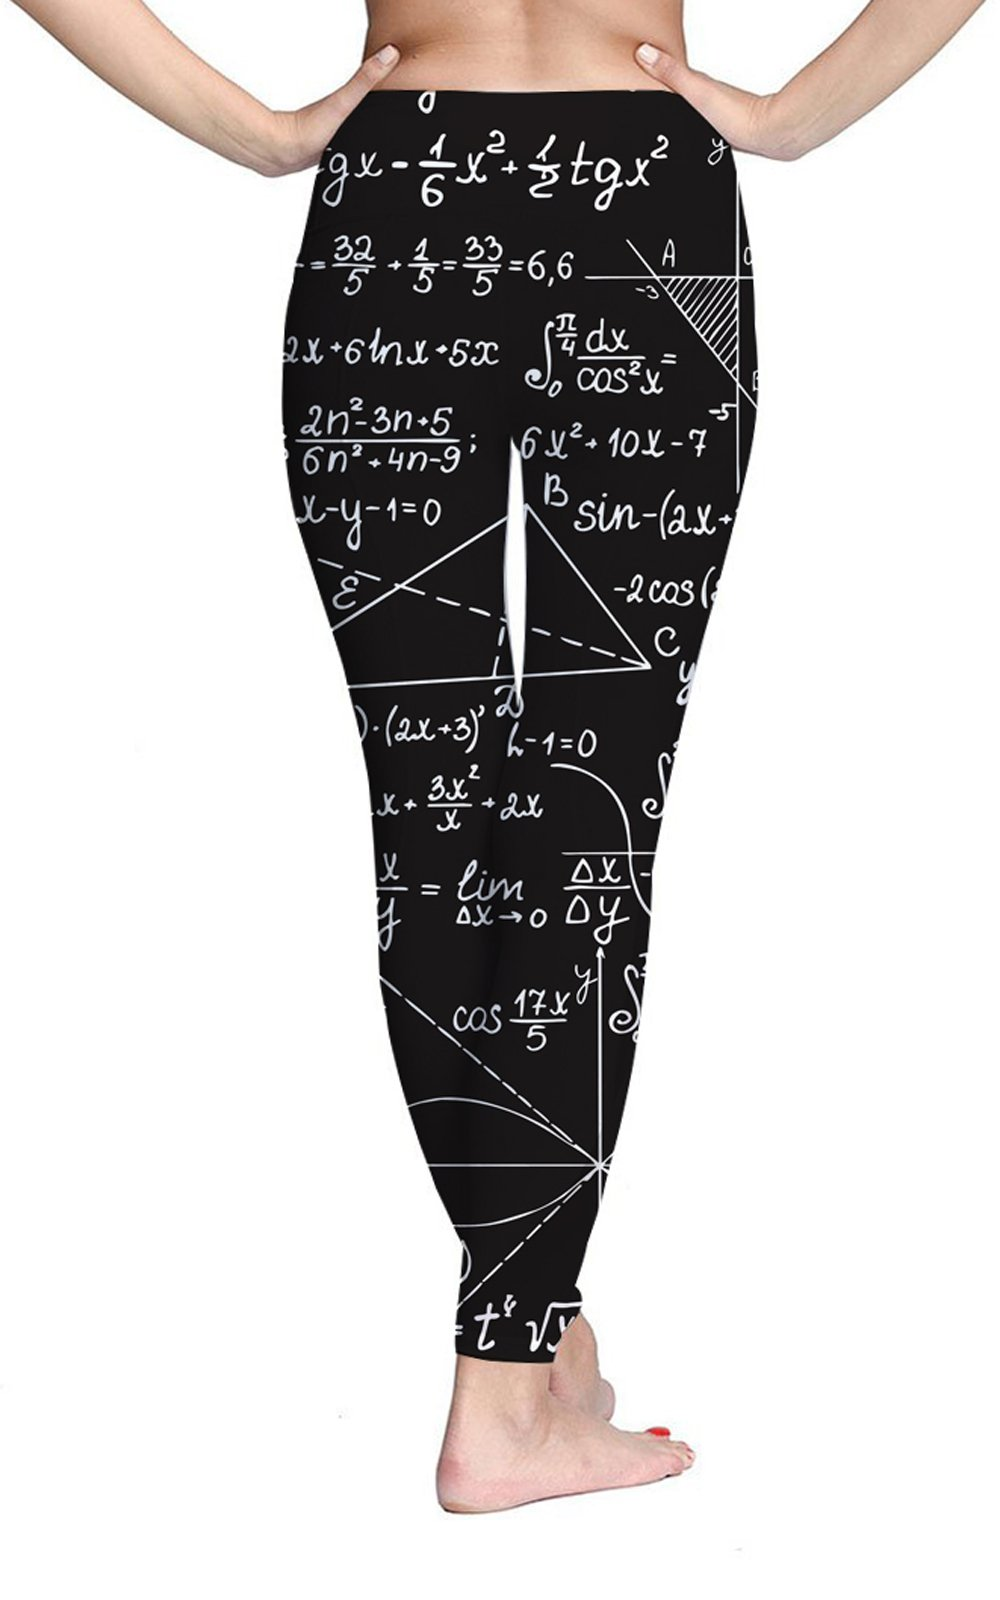 TUONROAD High Waist Printed Leggings Tummy Control Fitness Active Workout Running Jogging Gym Yoga Pants Activewear (Formula-1, M)